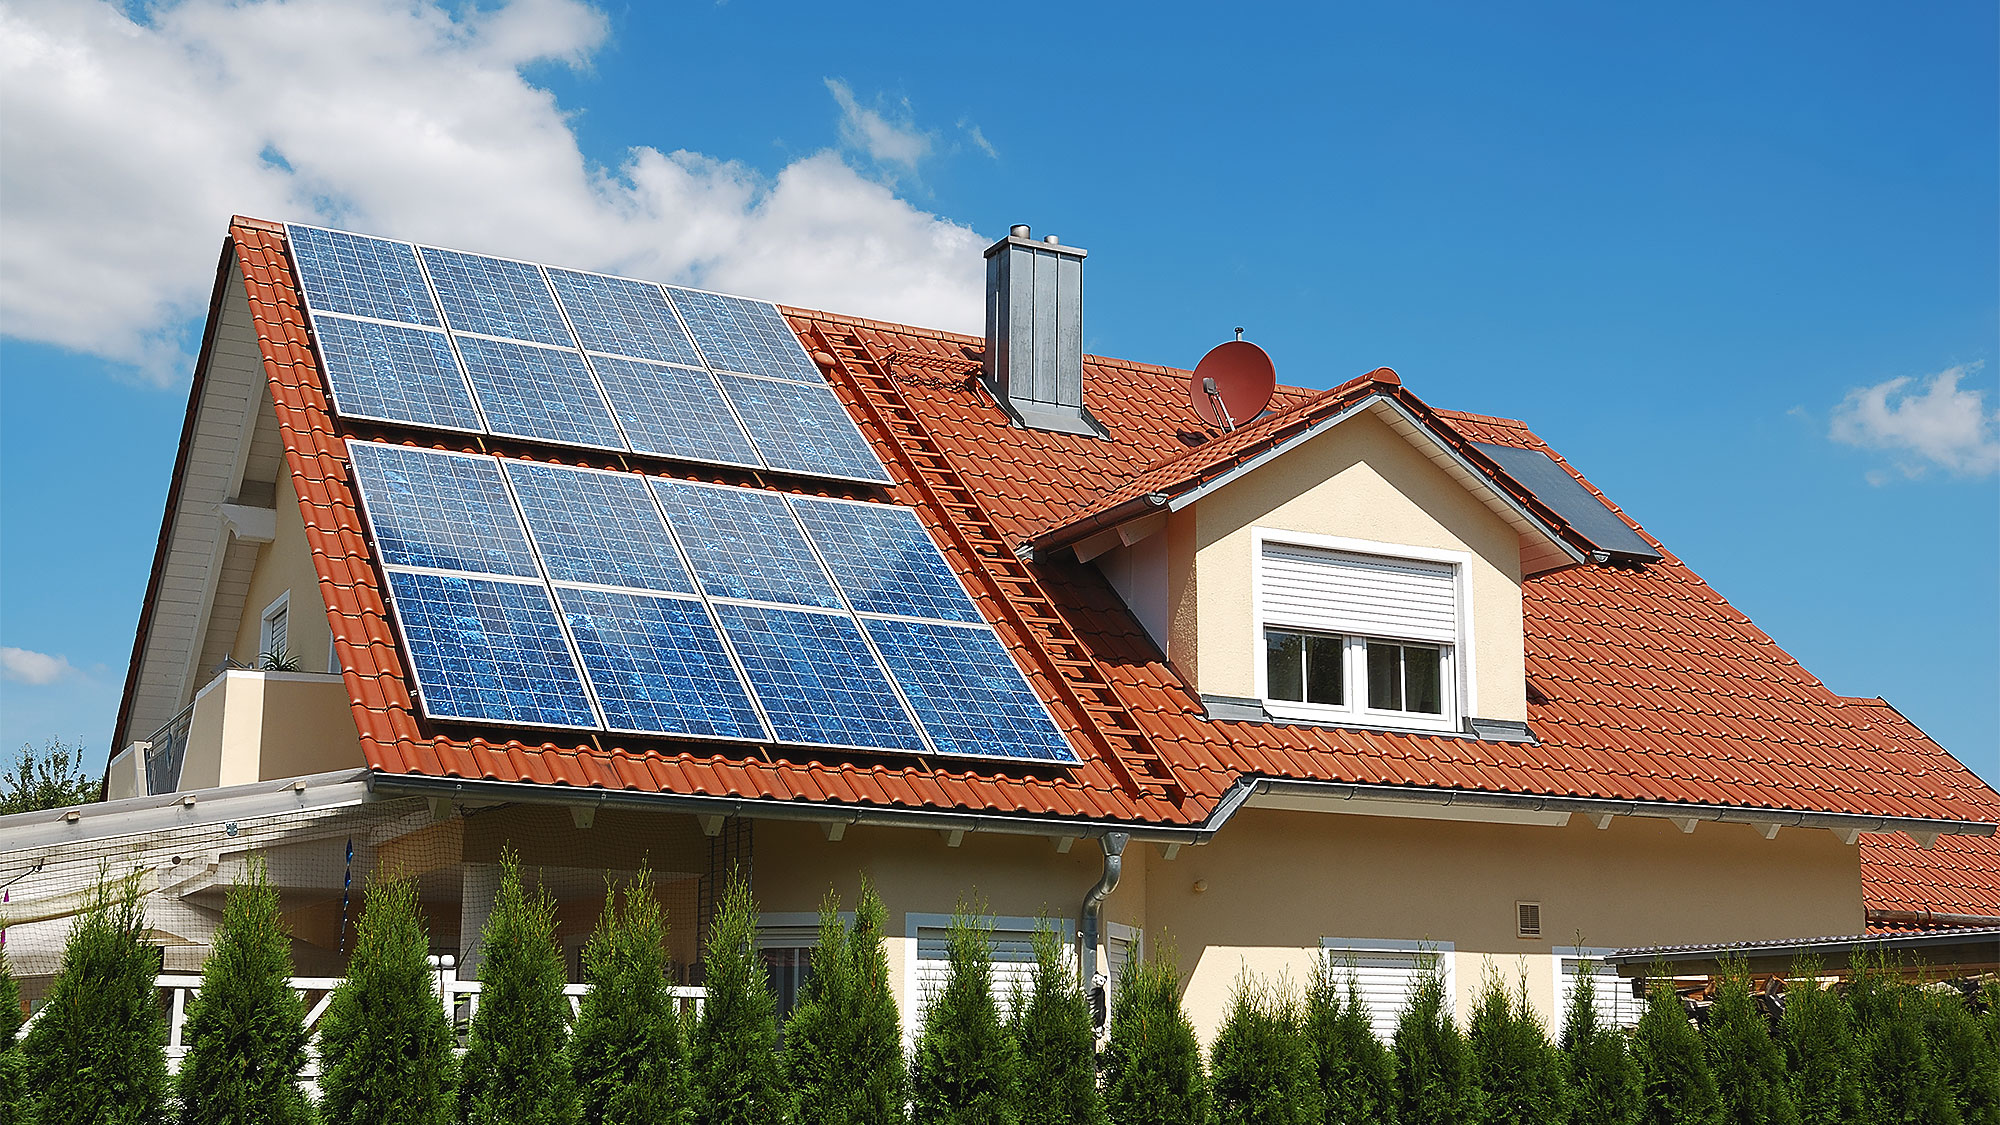 Residential house with solar panels on the roof